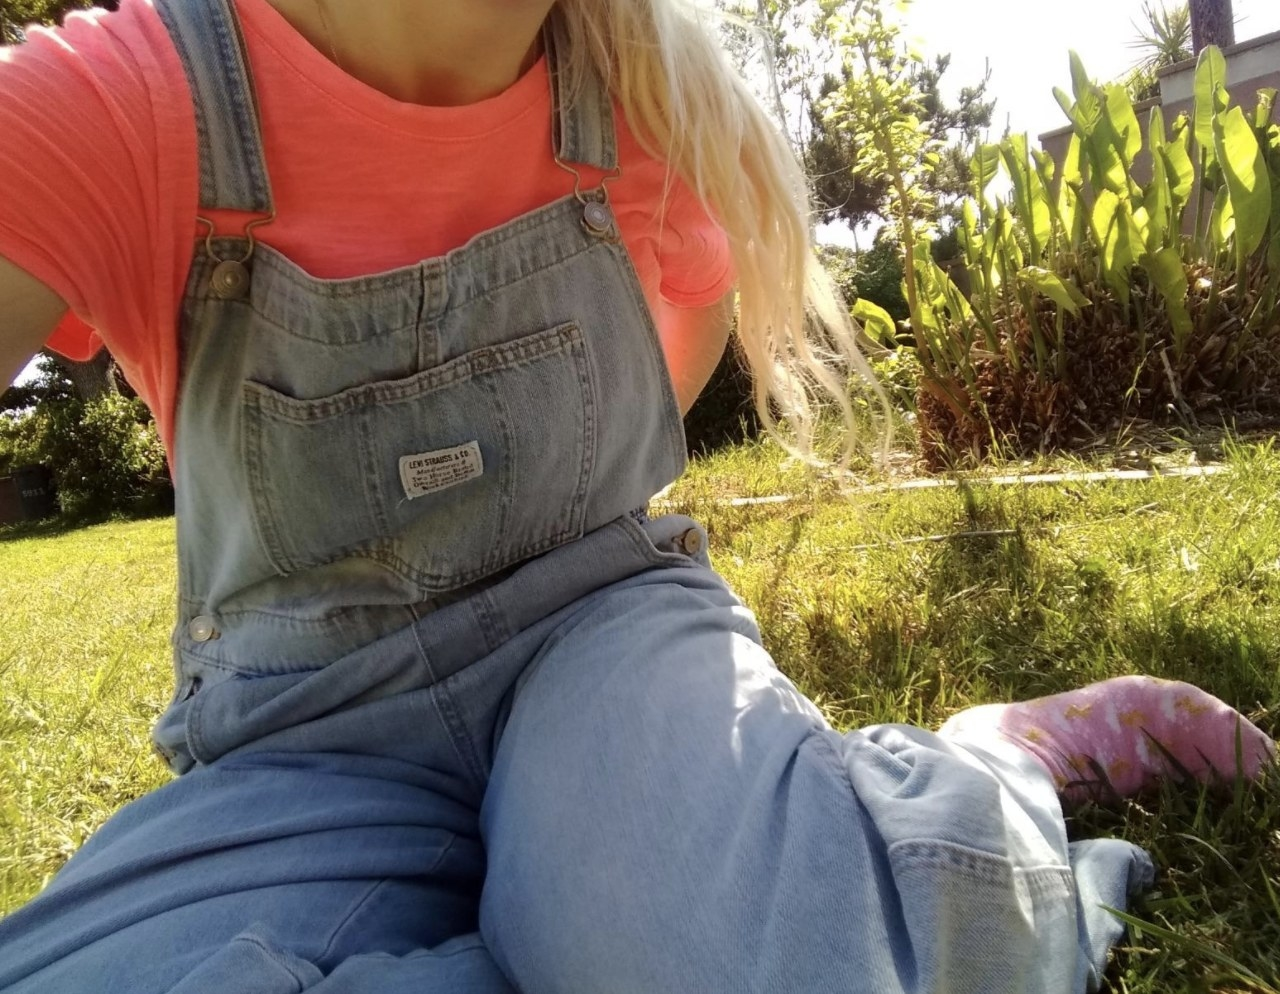 Person is wearing light denim overalls and a pink top